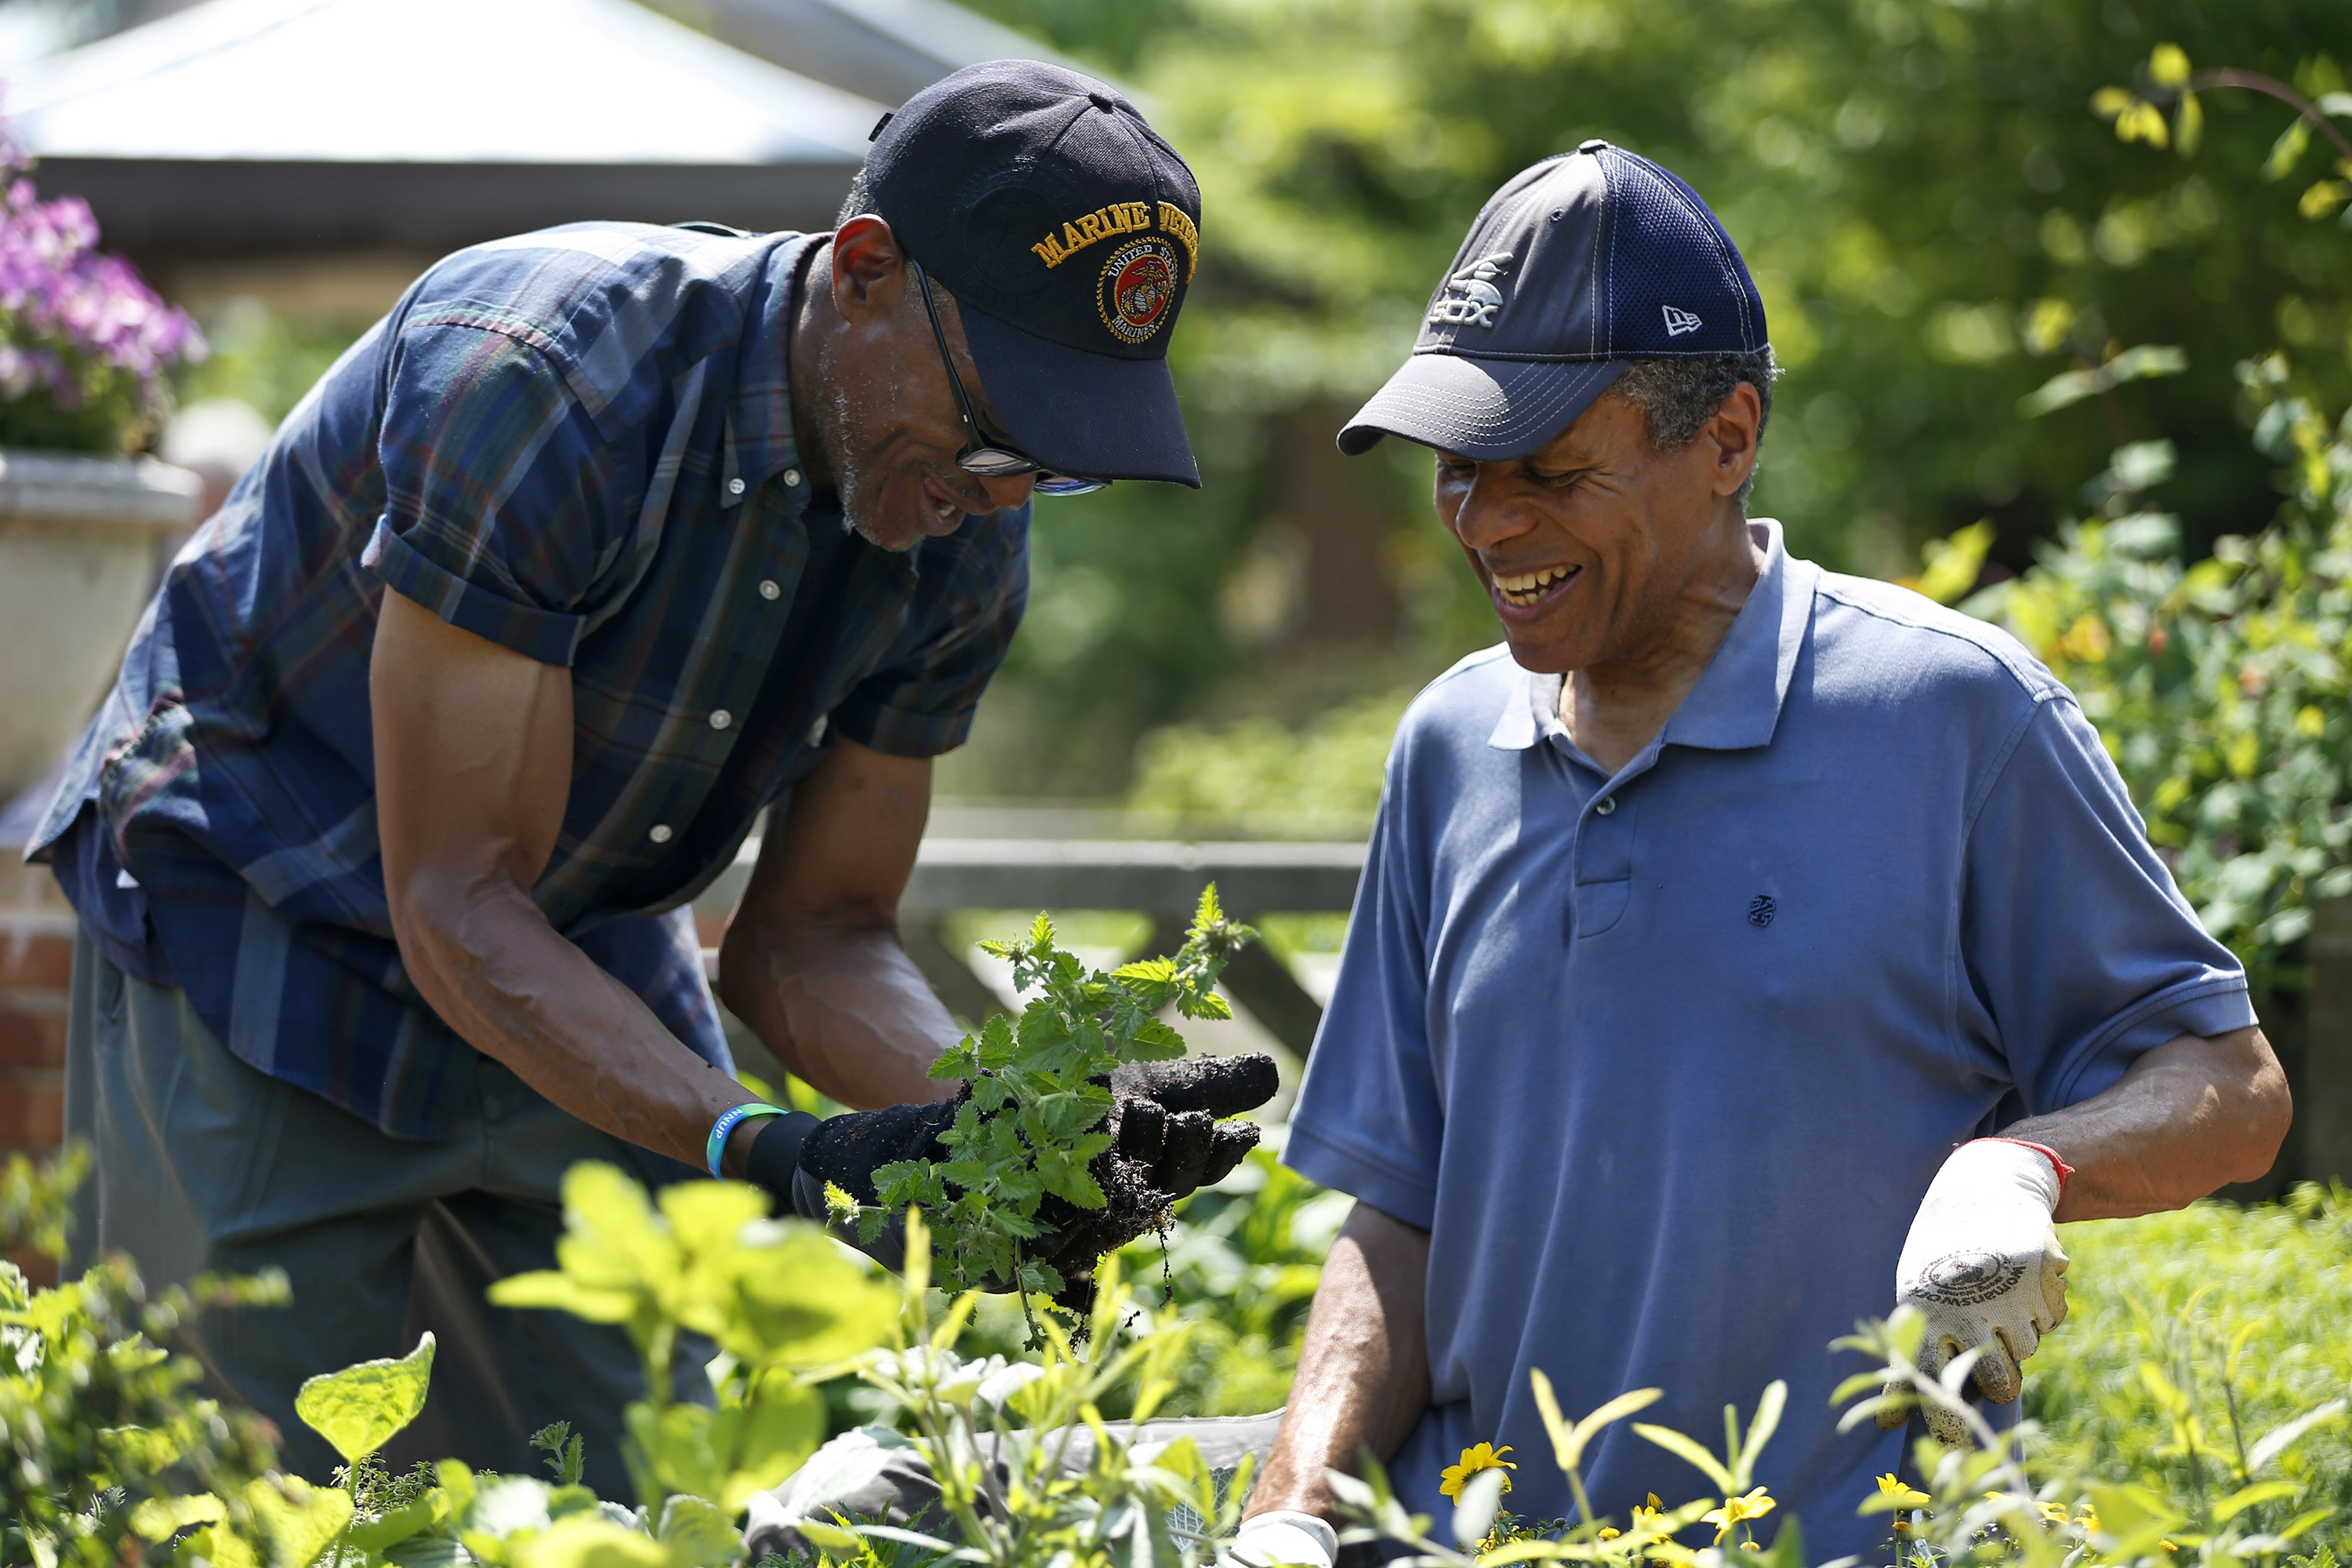 Veterans Henry John Henry, 62, left, and Jaffery Hart, 60, plant in the Chicago Botanic Garden through Thresholds, a therapy program for those who have served.